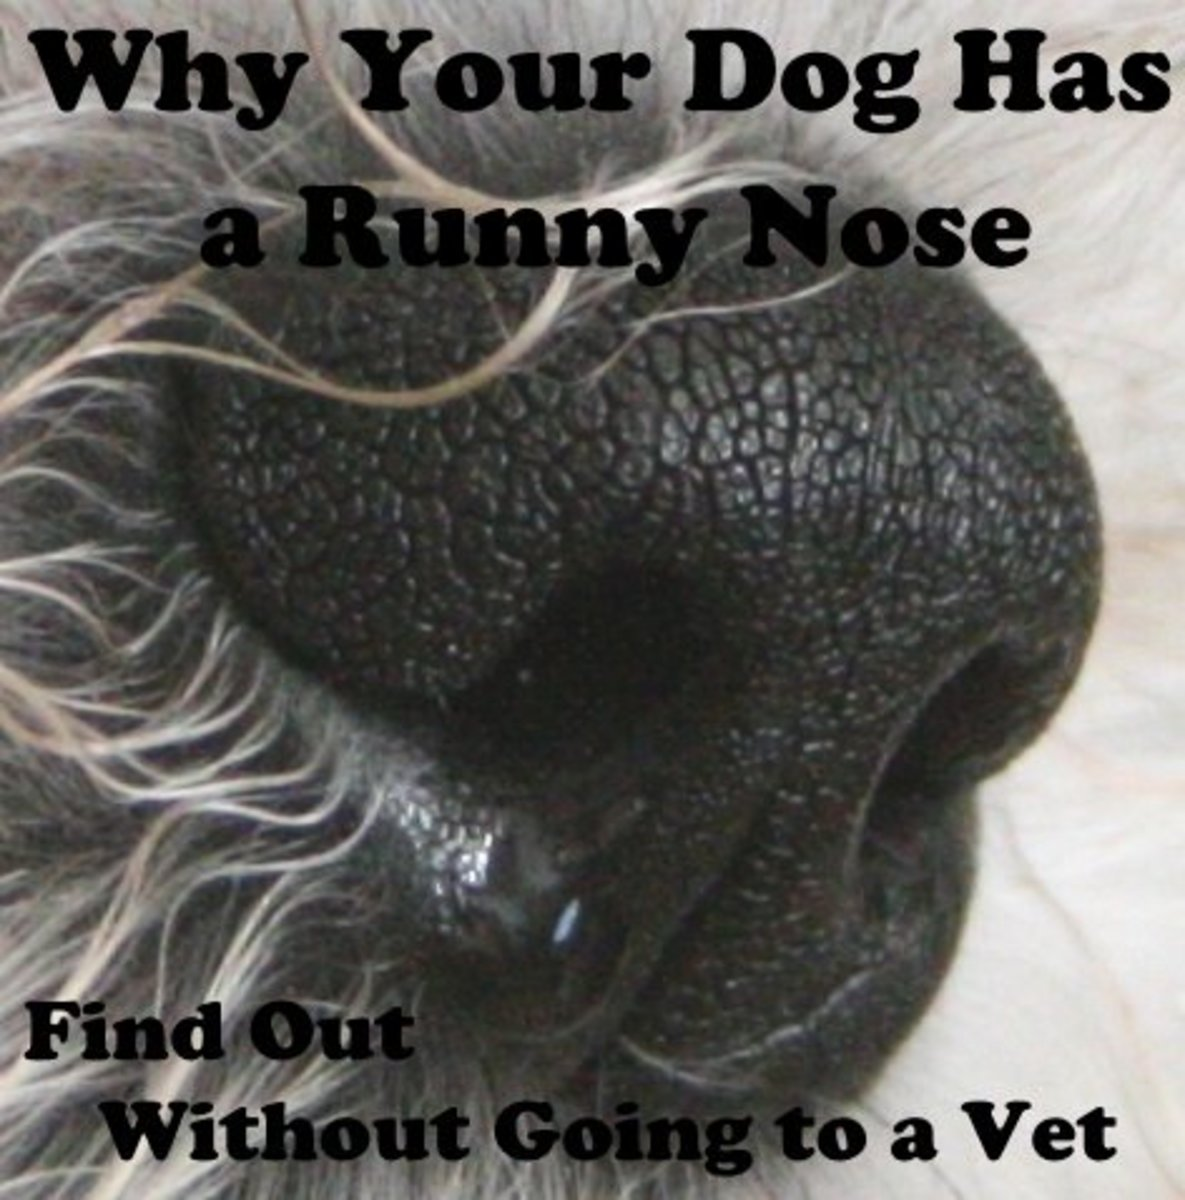 Why Your Dog Has a Runny Nose: Find Out Without Going to the Vet (It Isn't Always an Allergy)